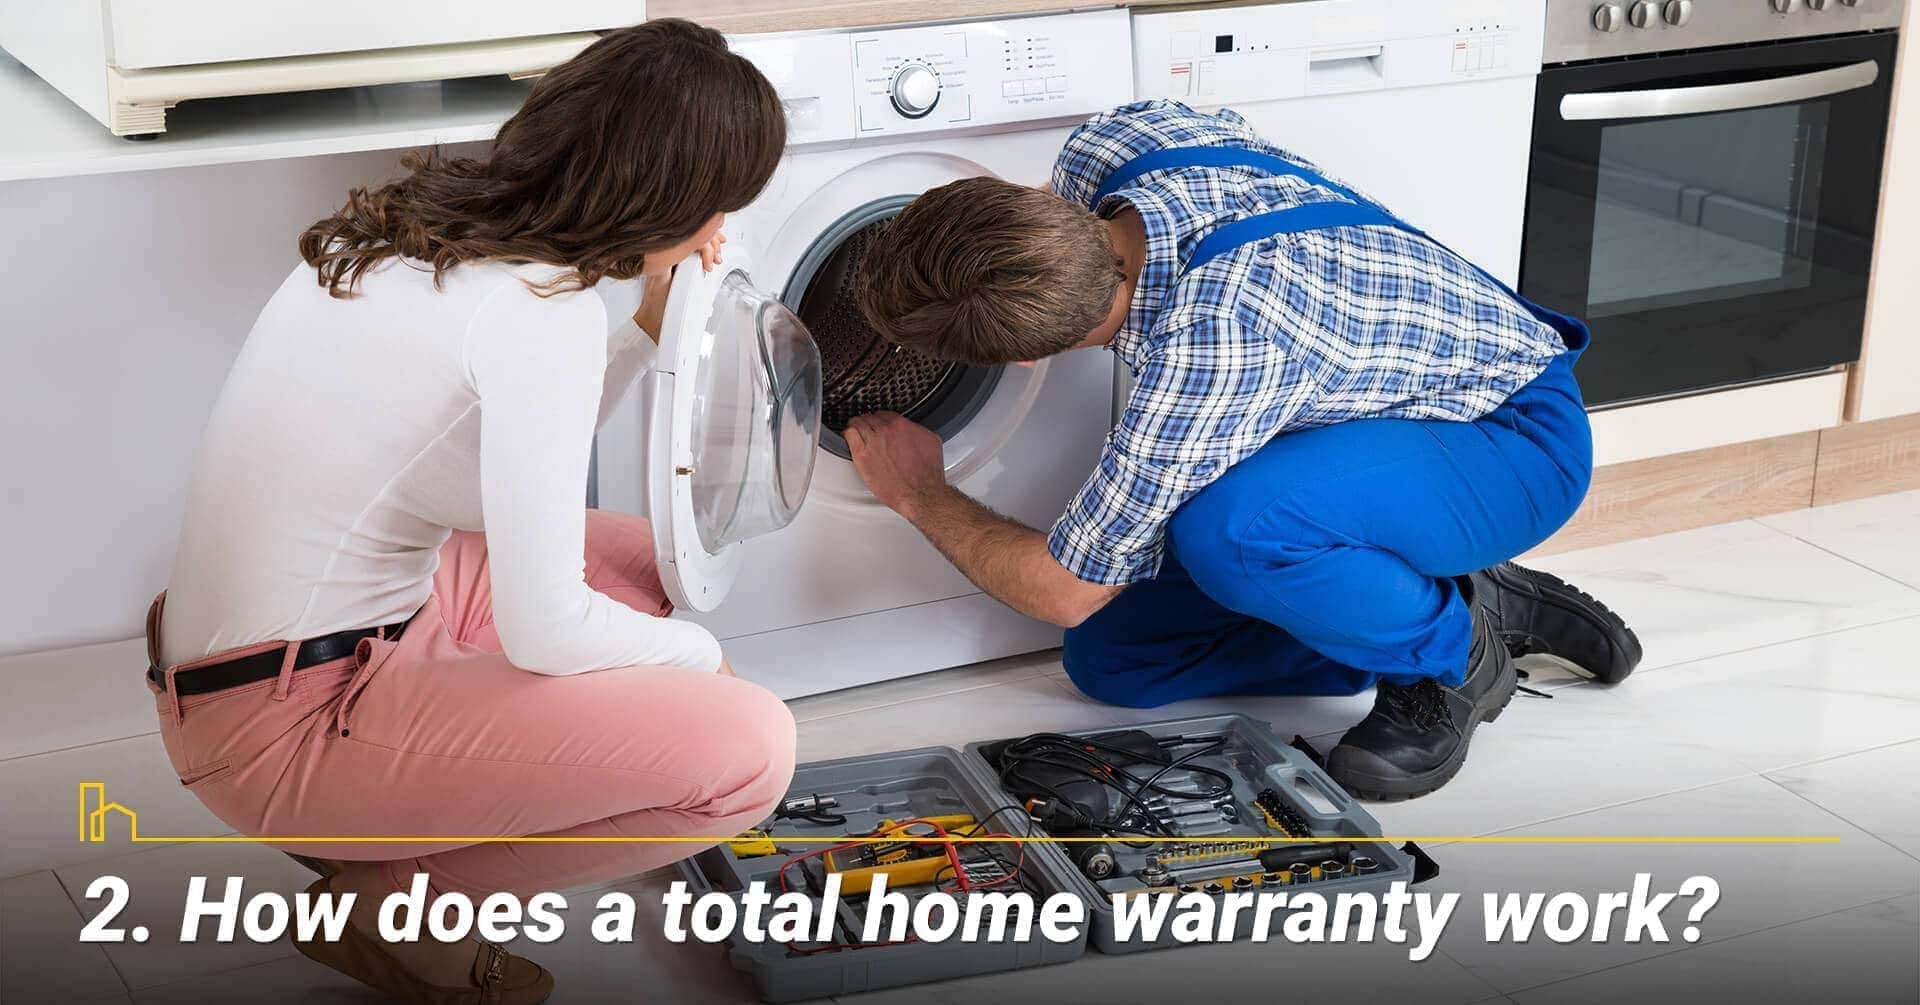 How does a total home warranty work?